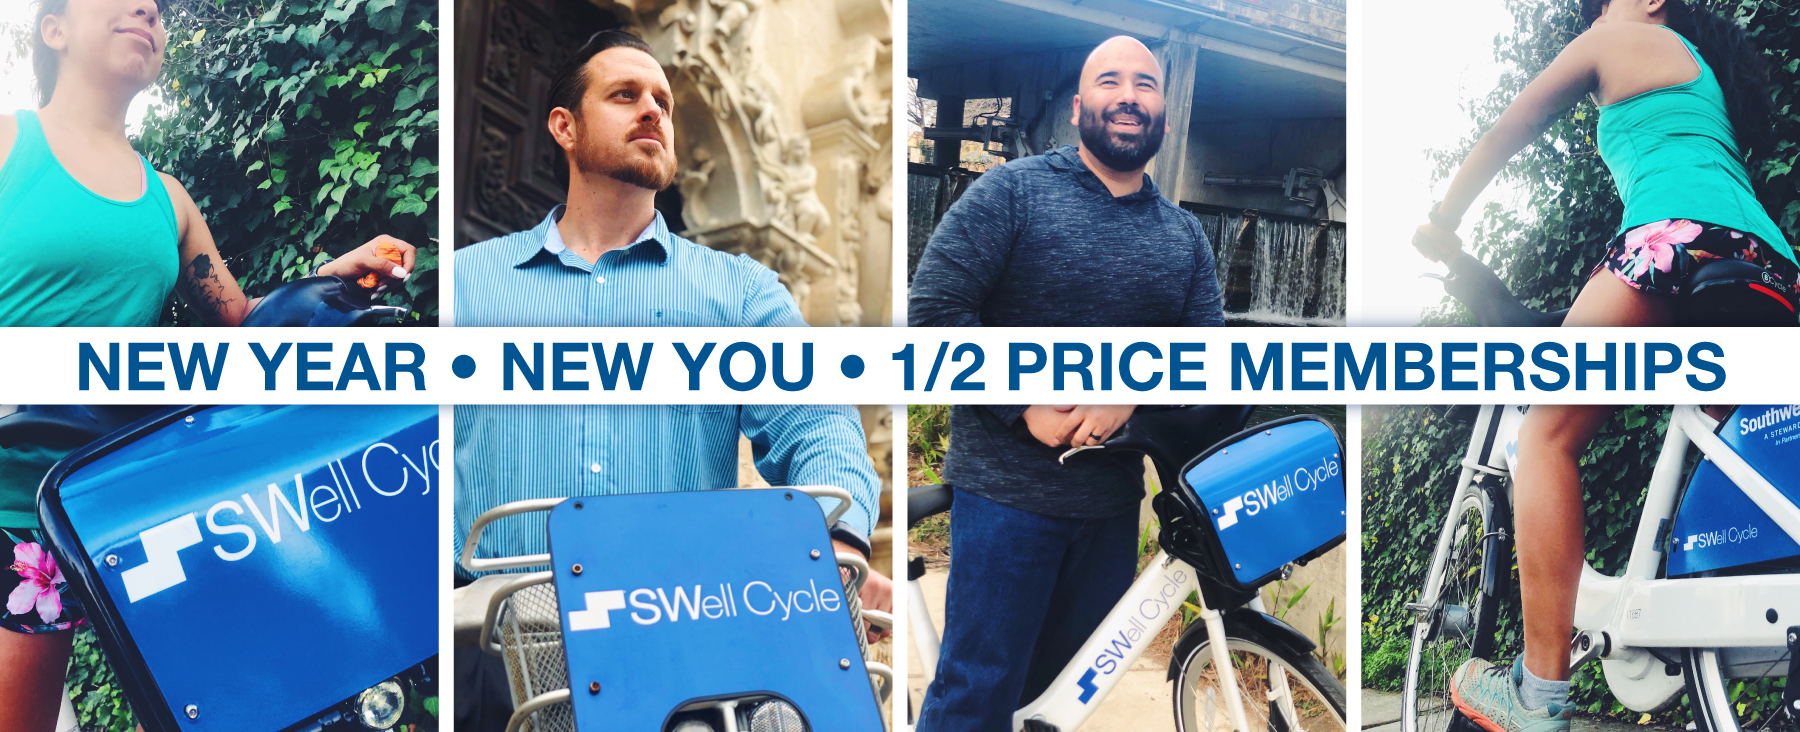 New Year, New You! Half Price SWell Cycle Memberships